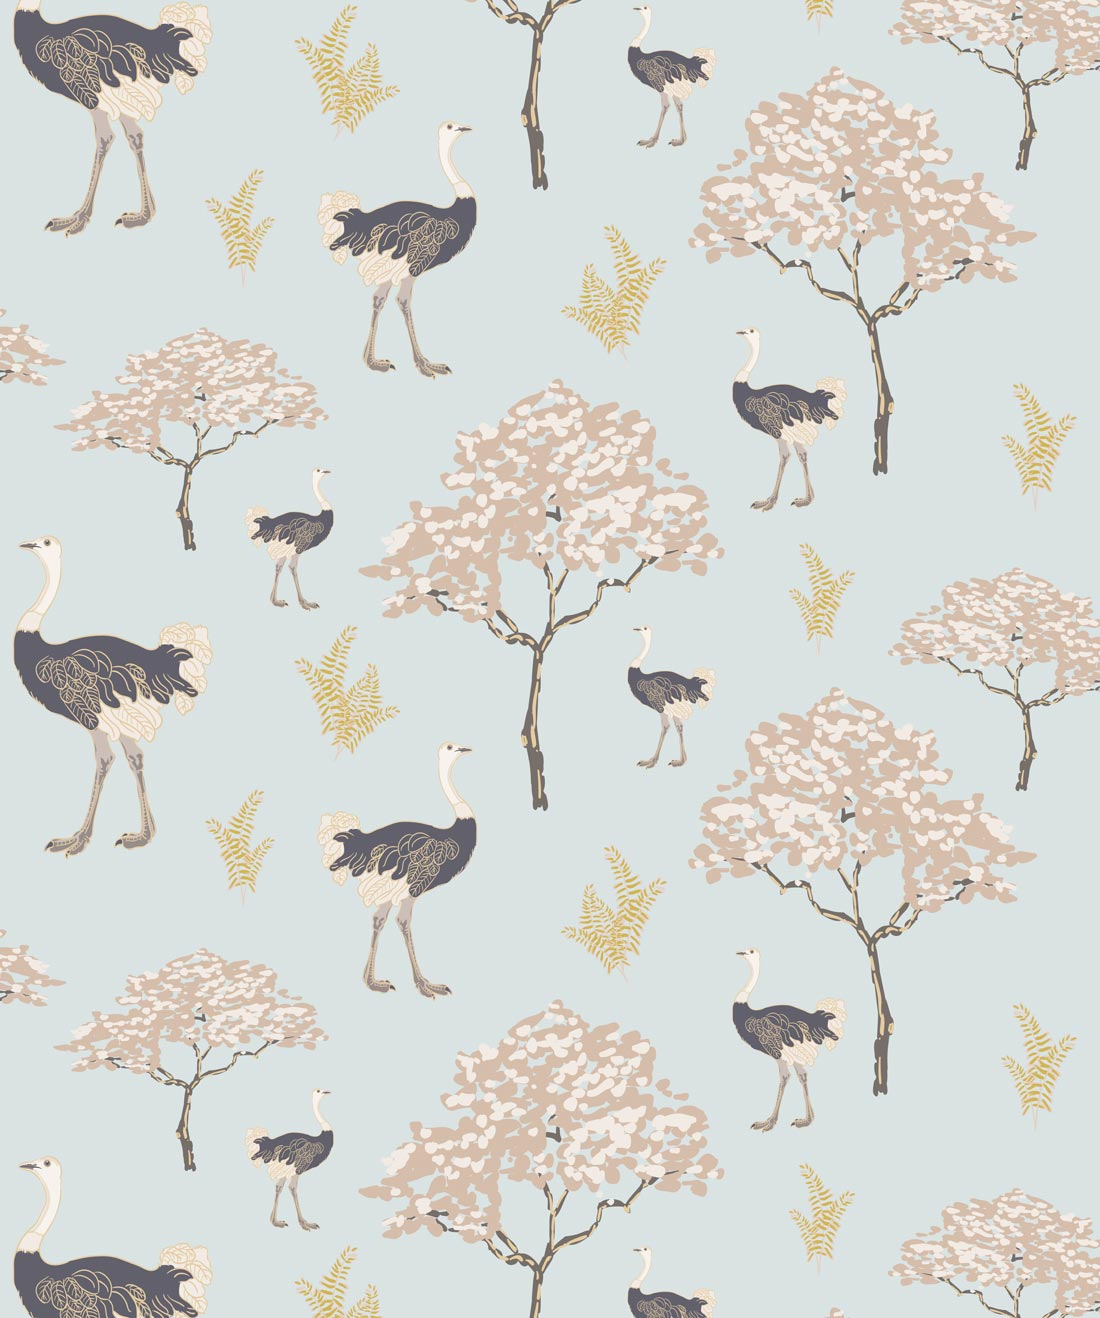 Savanna Ostrich Wallpaper